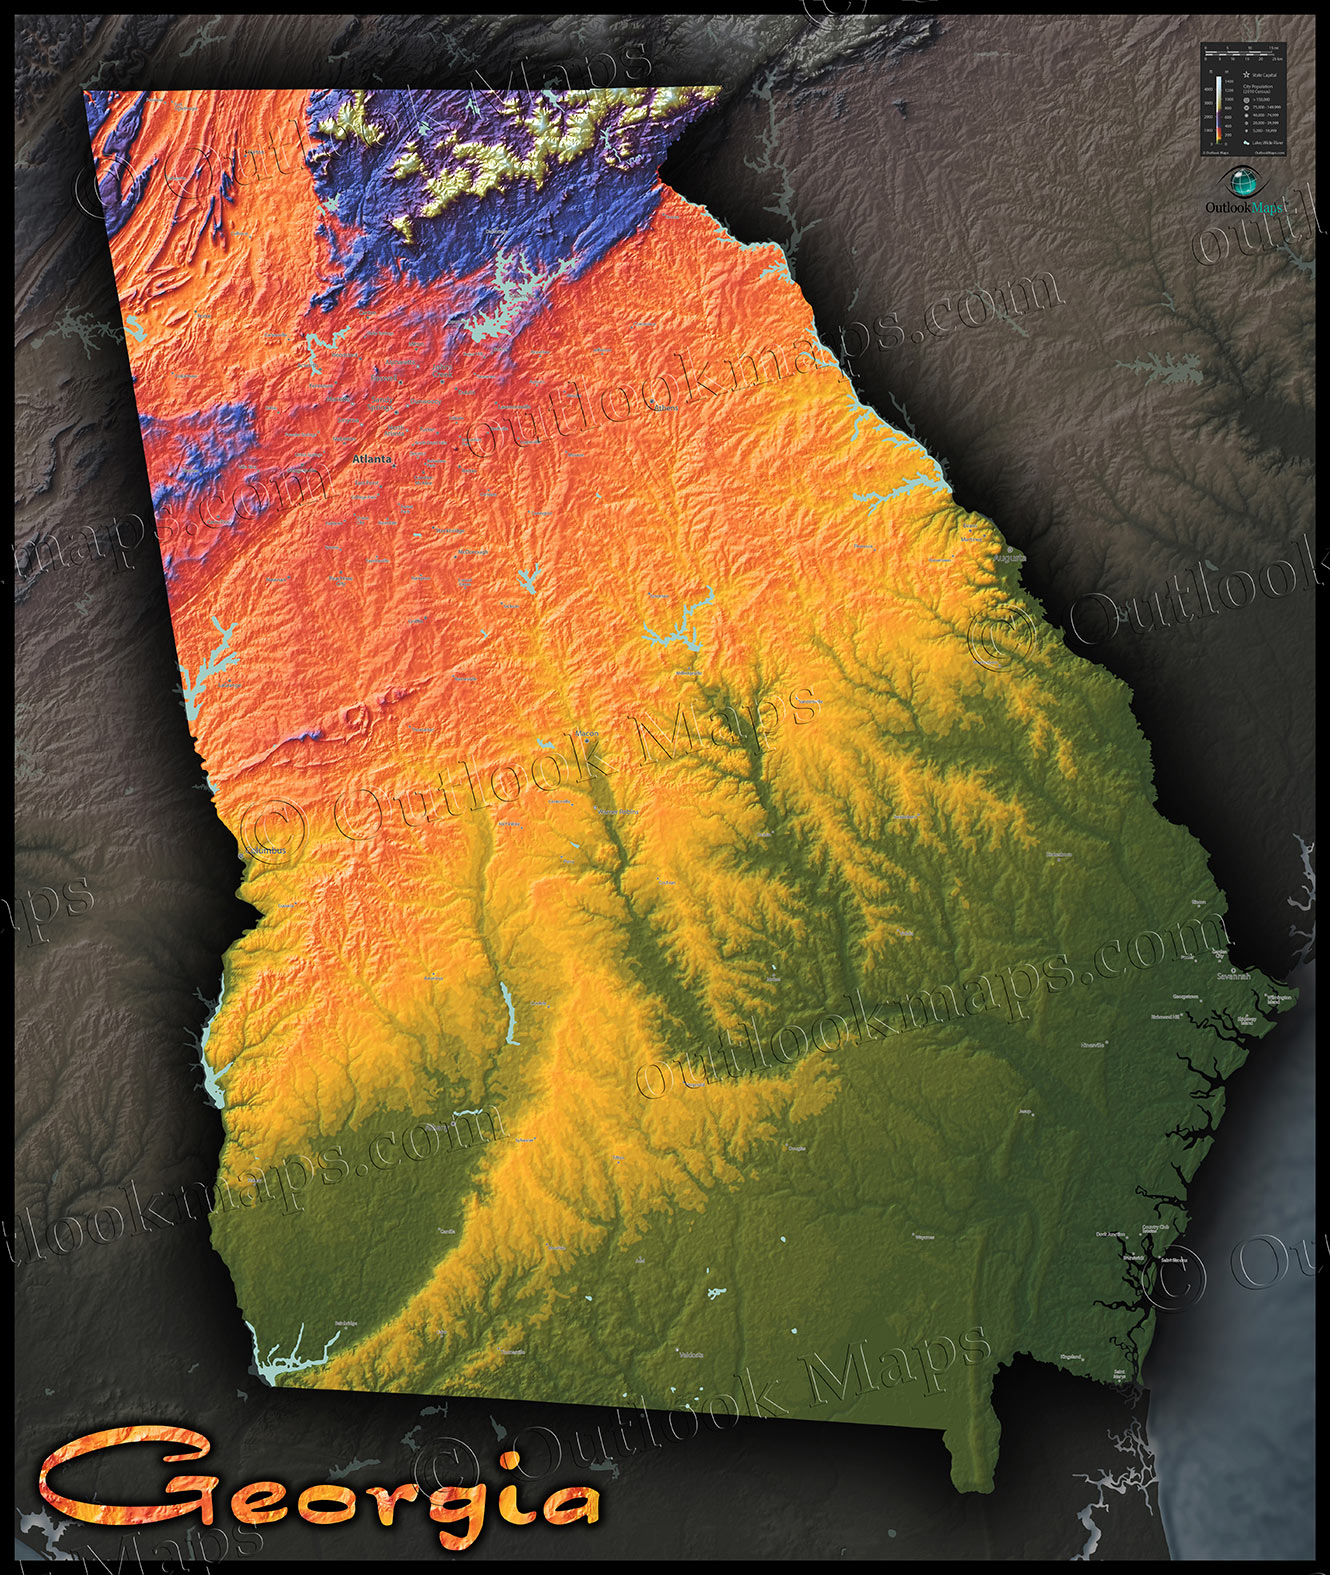 Topographic Georgia State Map | Vibrant Physical Landscape